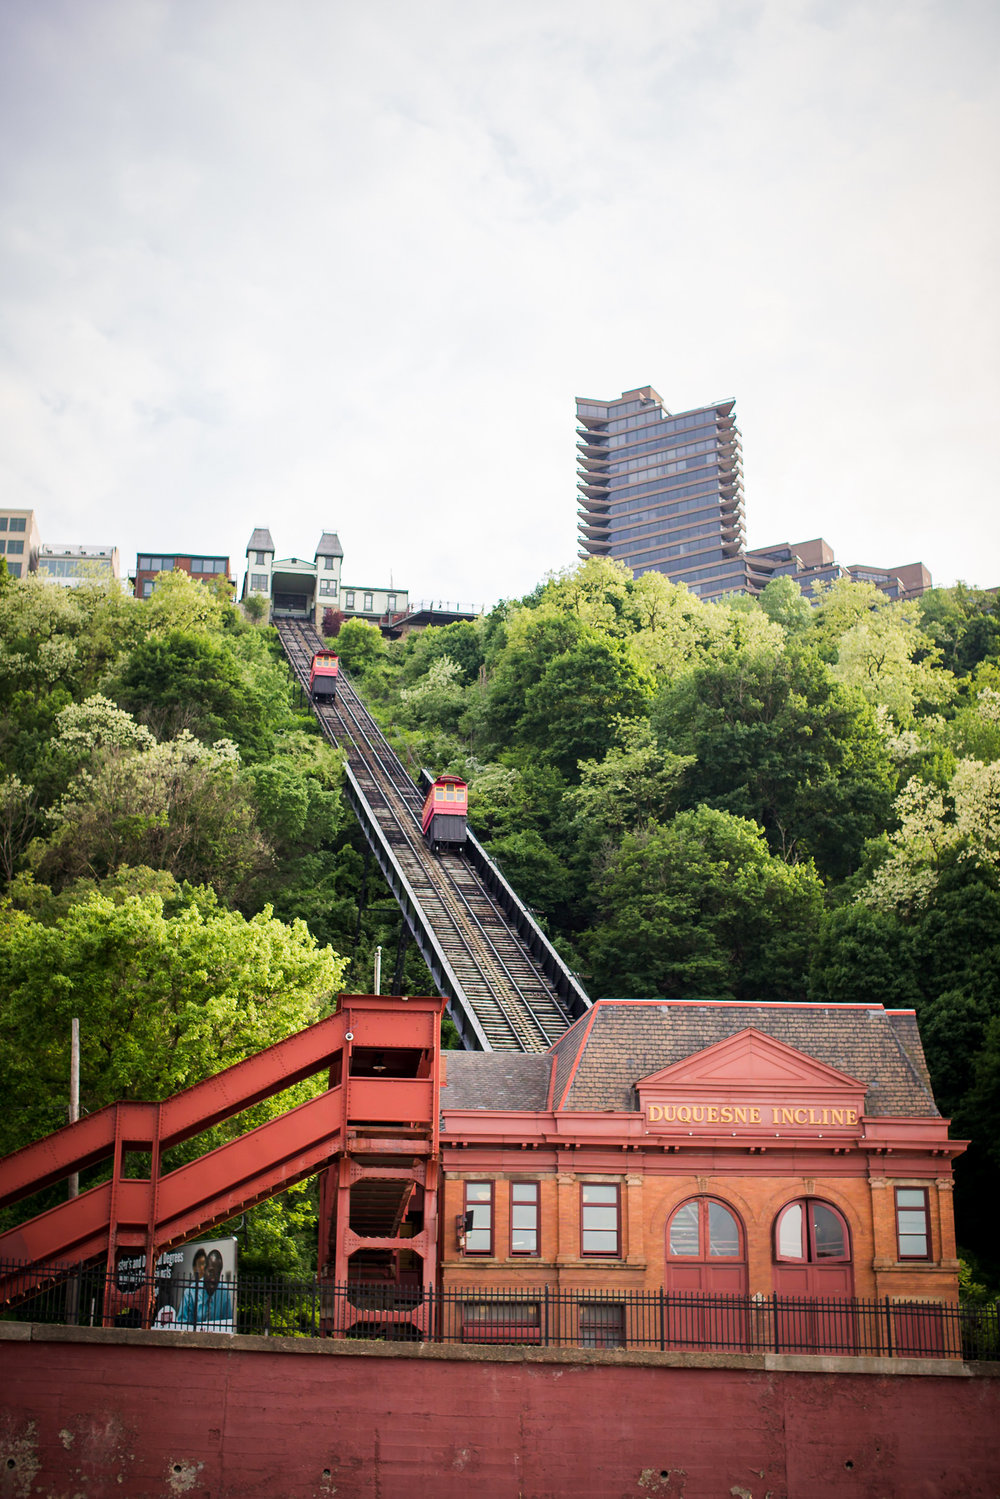 Station Square Duquesne Incline Wedding Engagement Picture locations-1.jpg